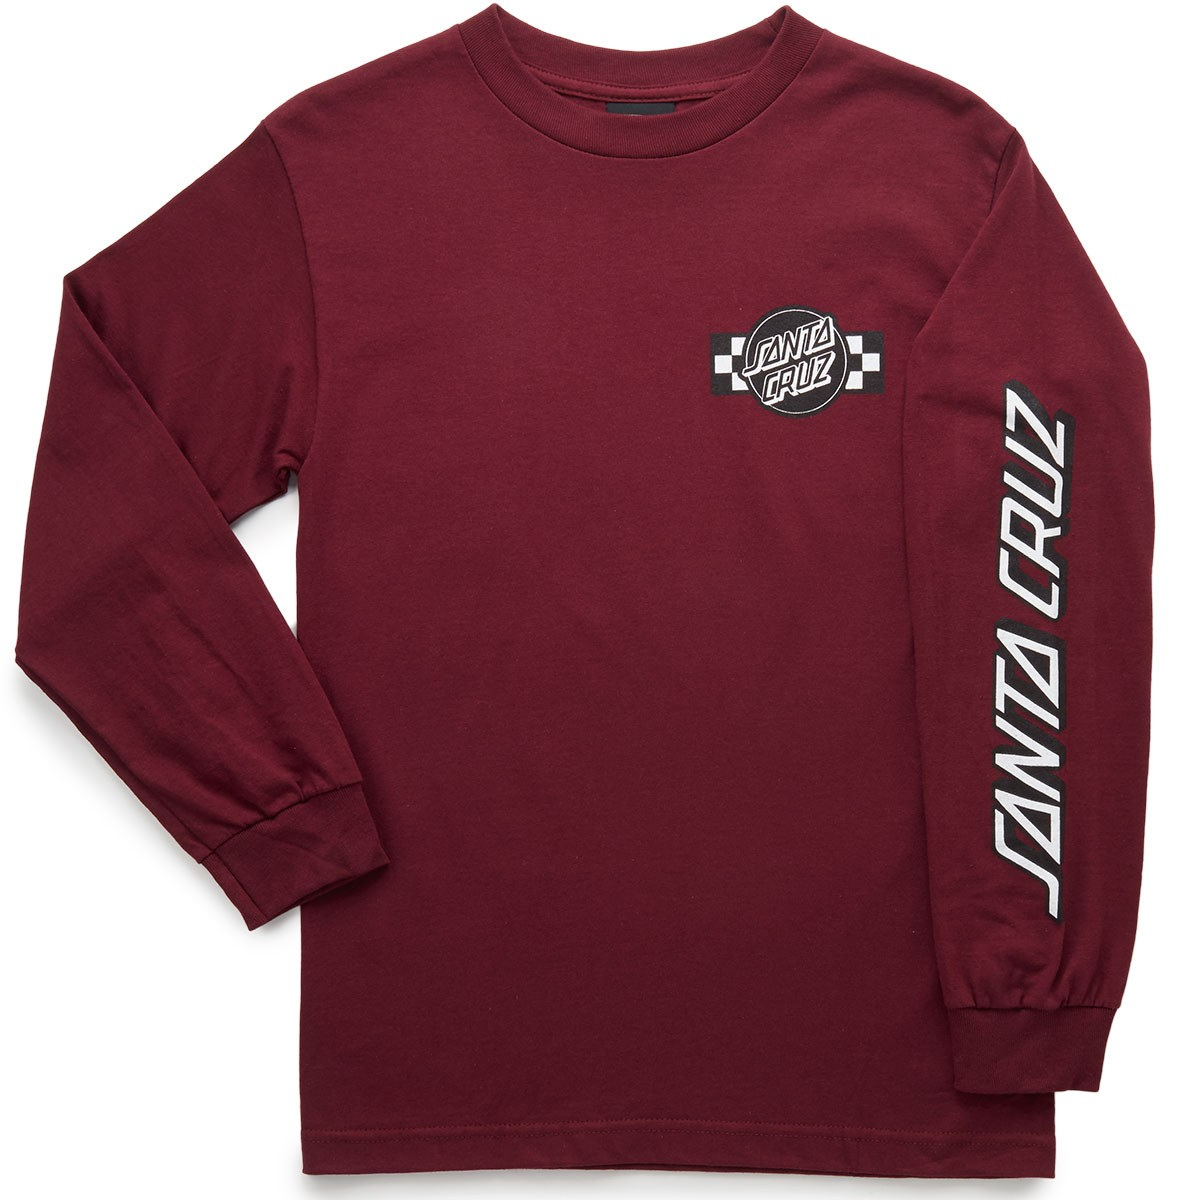 Cruz Contest Long Sleeve T-Shirt - Burgundy